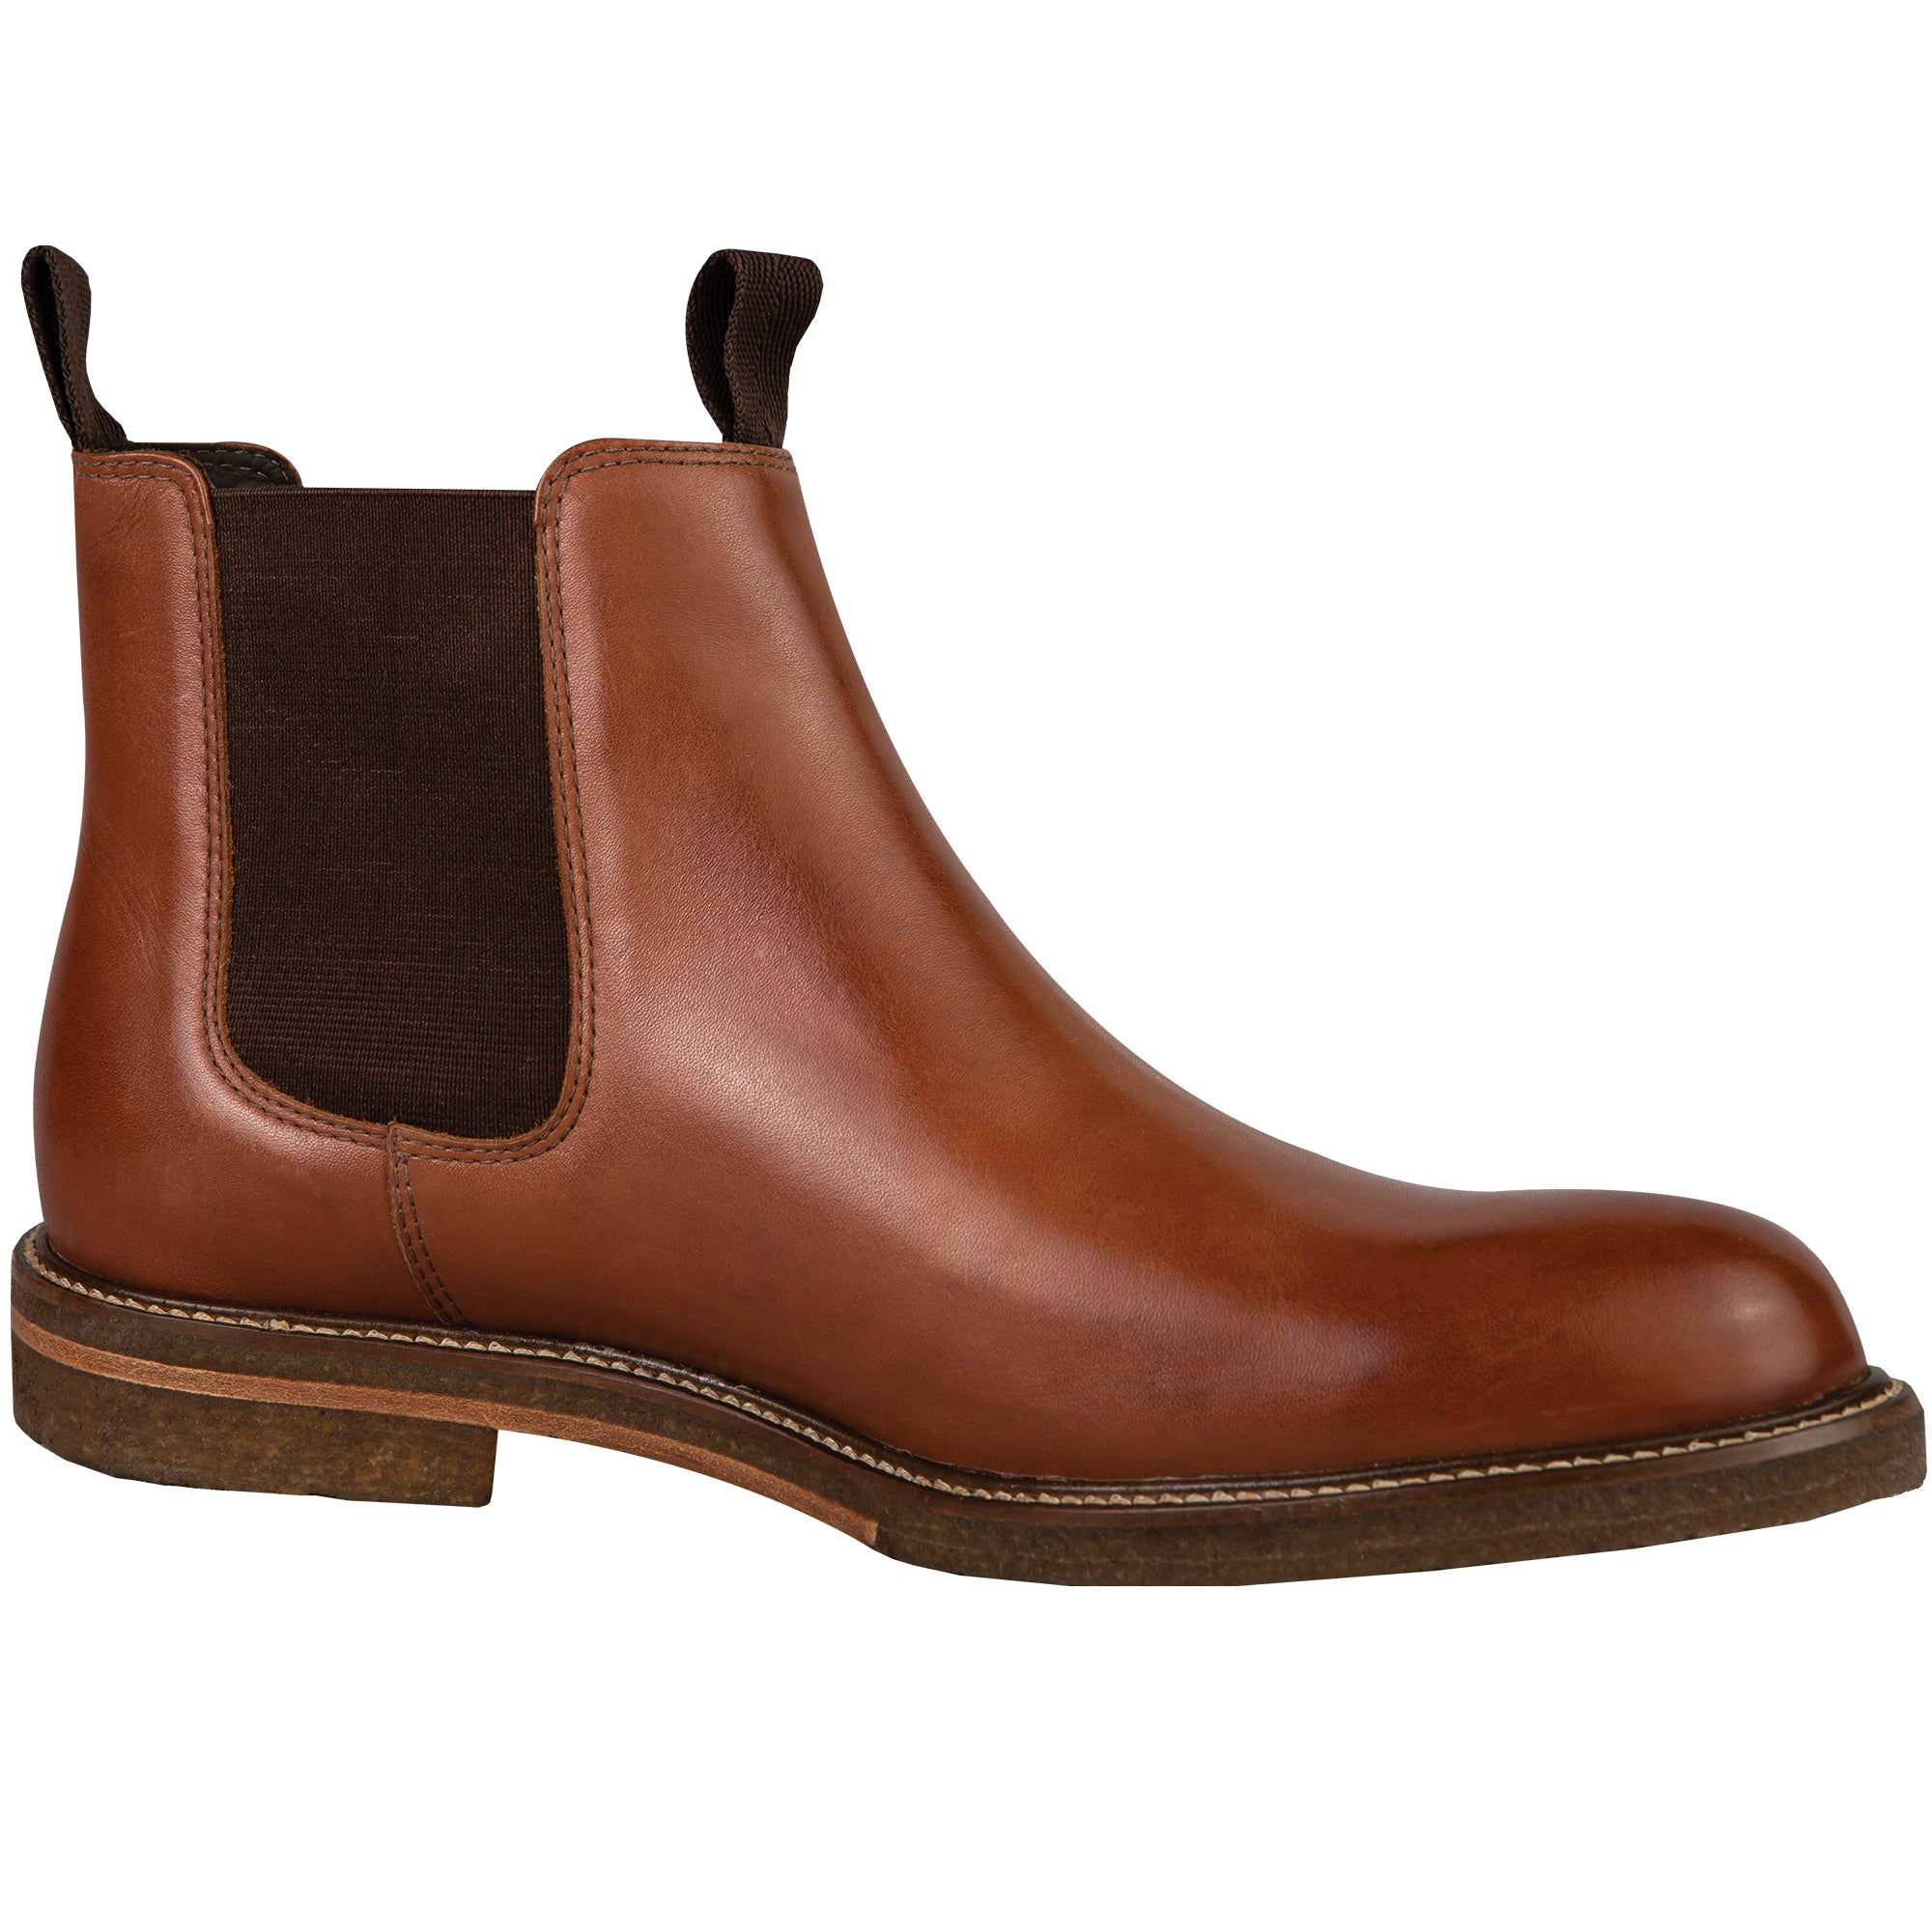 Highland Chelsea Boot